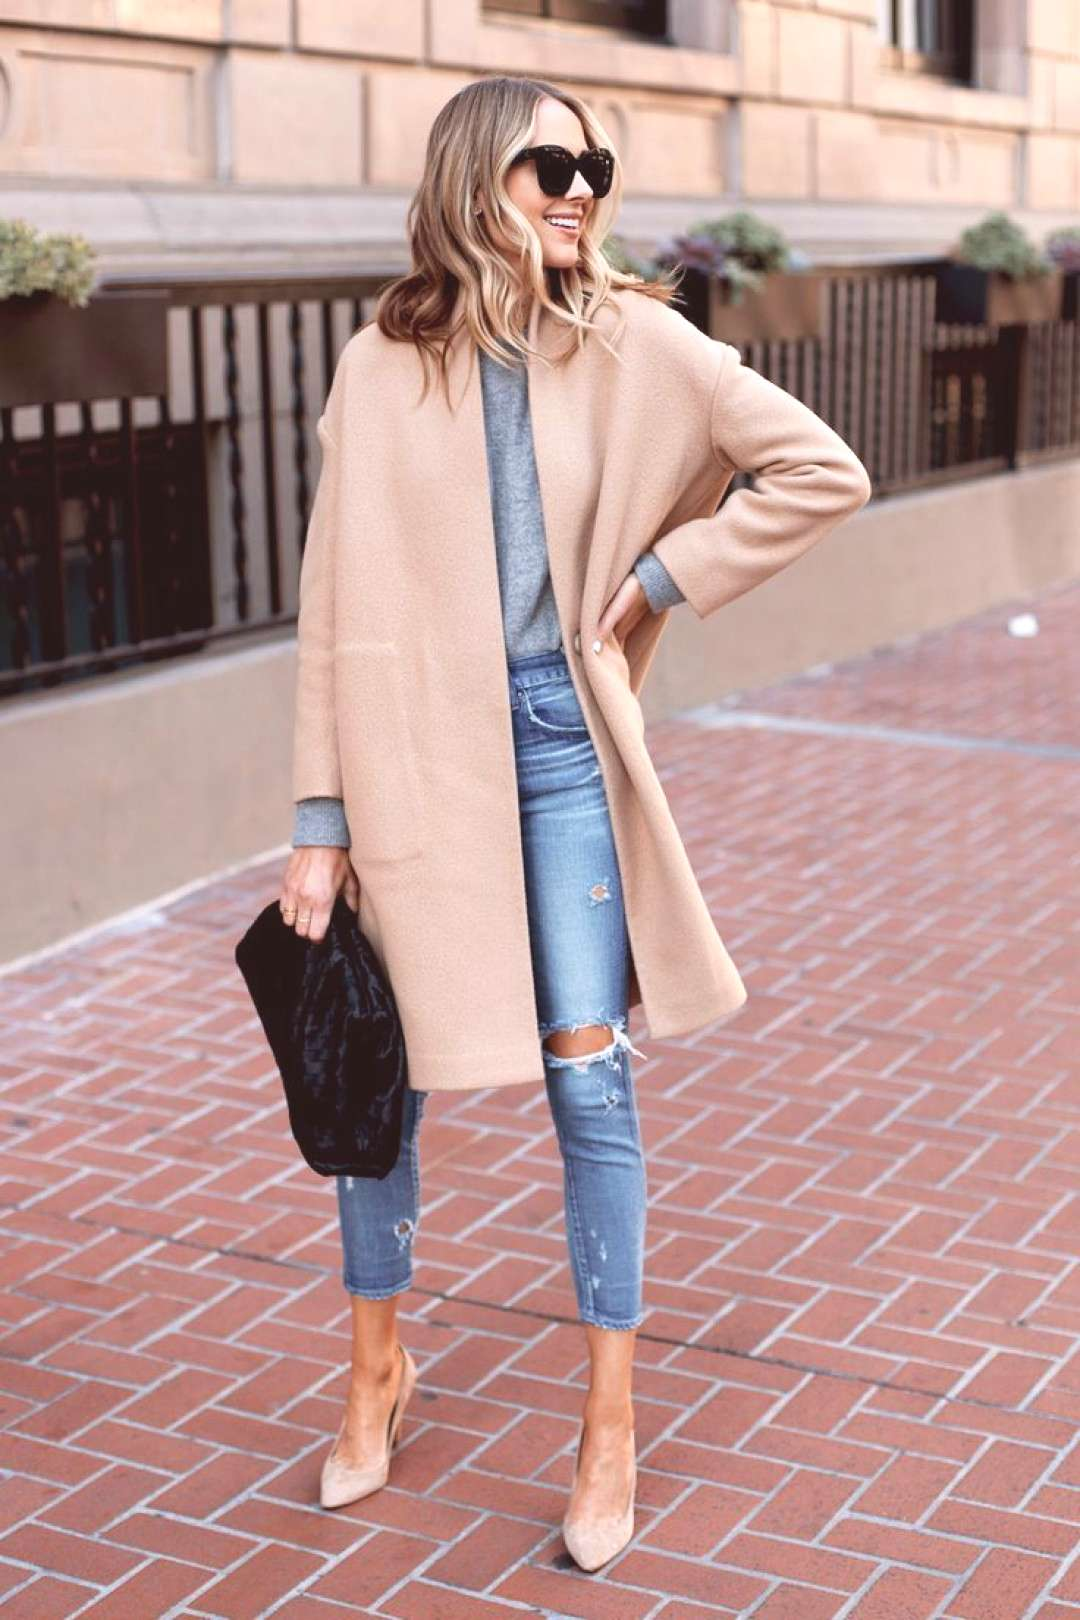 If Youre Going to Splurgeon a Classic Camel Coat,Make it This One | Fashion Jackson